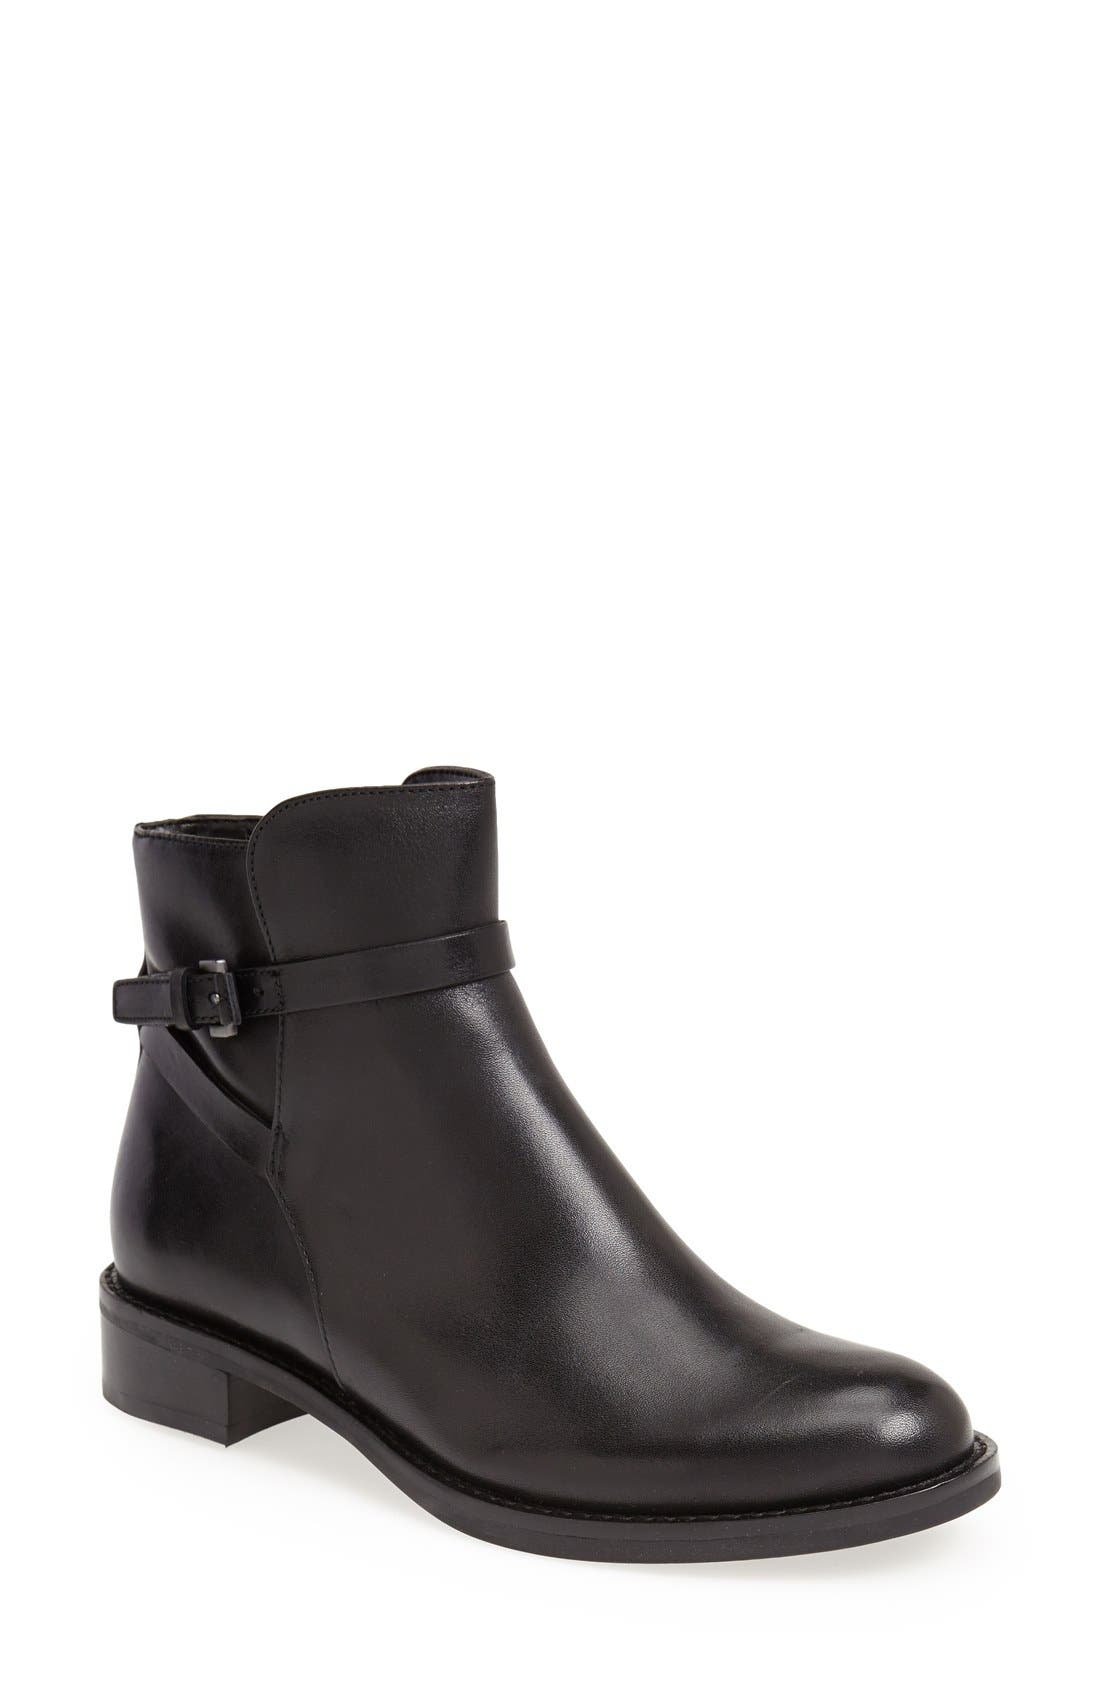 Alternate Image 1 Selected - ECCO 'Hobart Strap' Ankle Boot (Women)